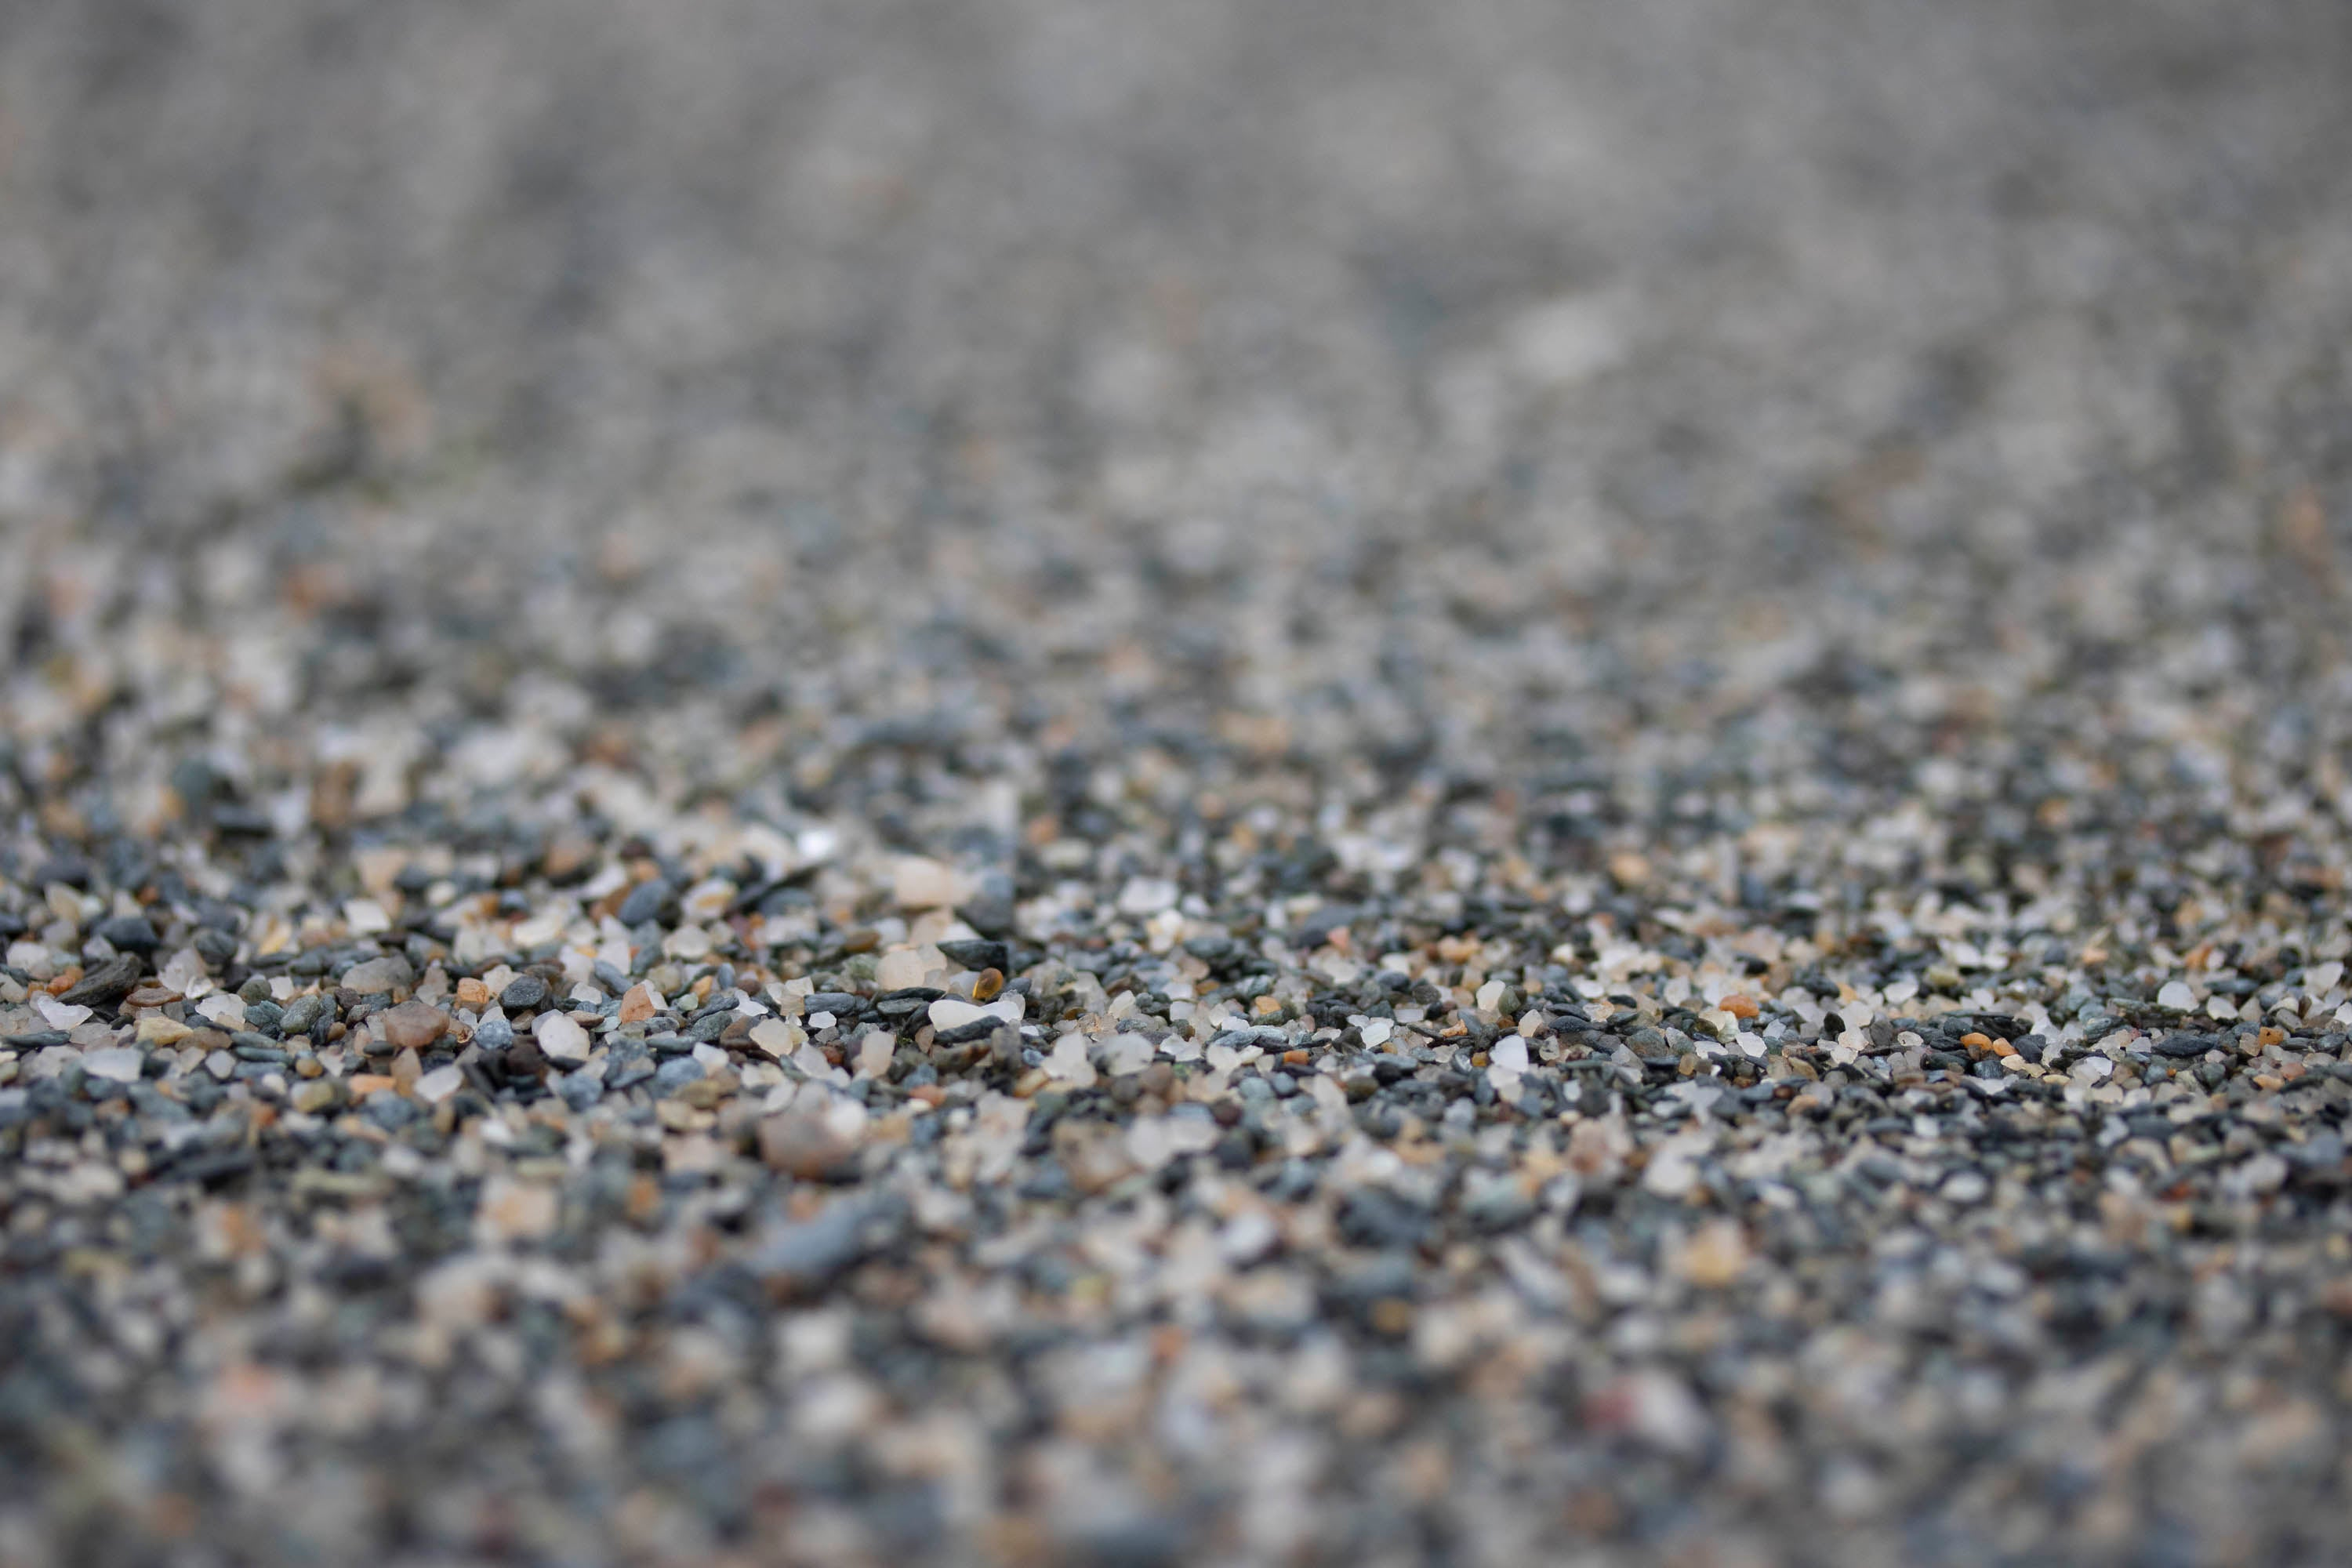 Grains of sand on the beach at Hoswick, Shetland. Large, multi-coloured grains